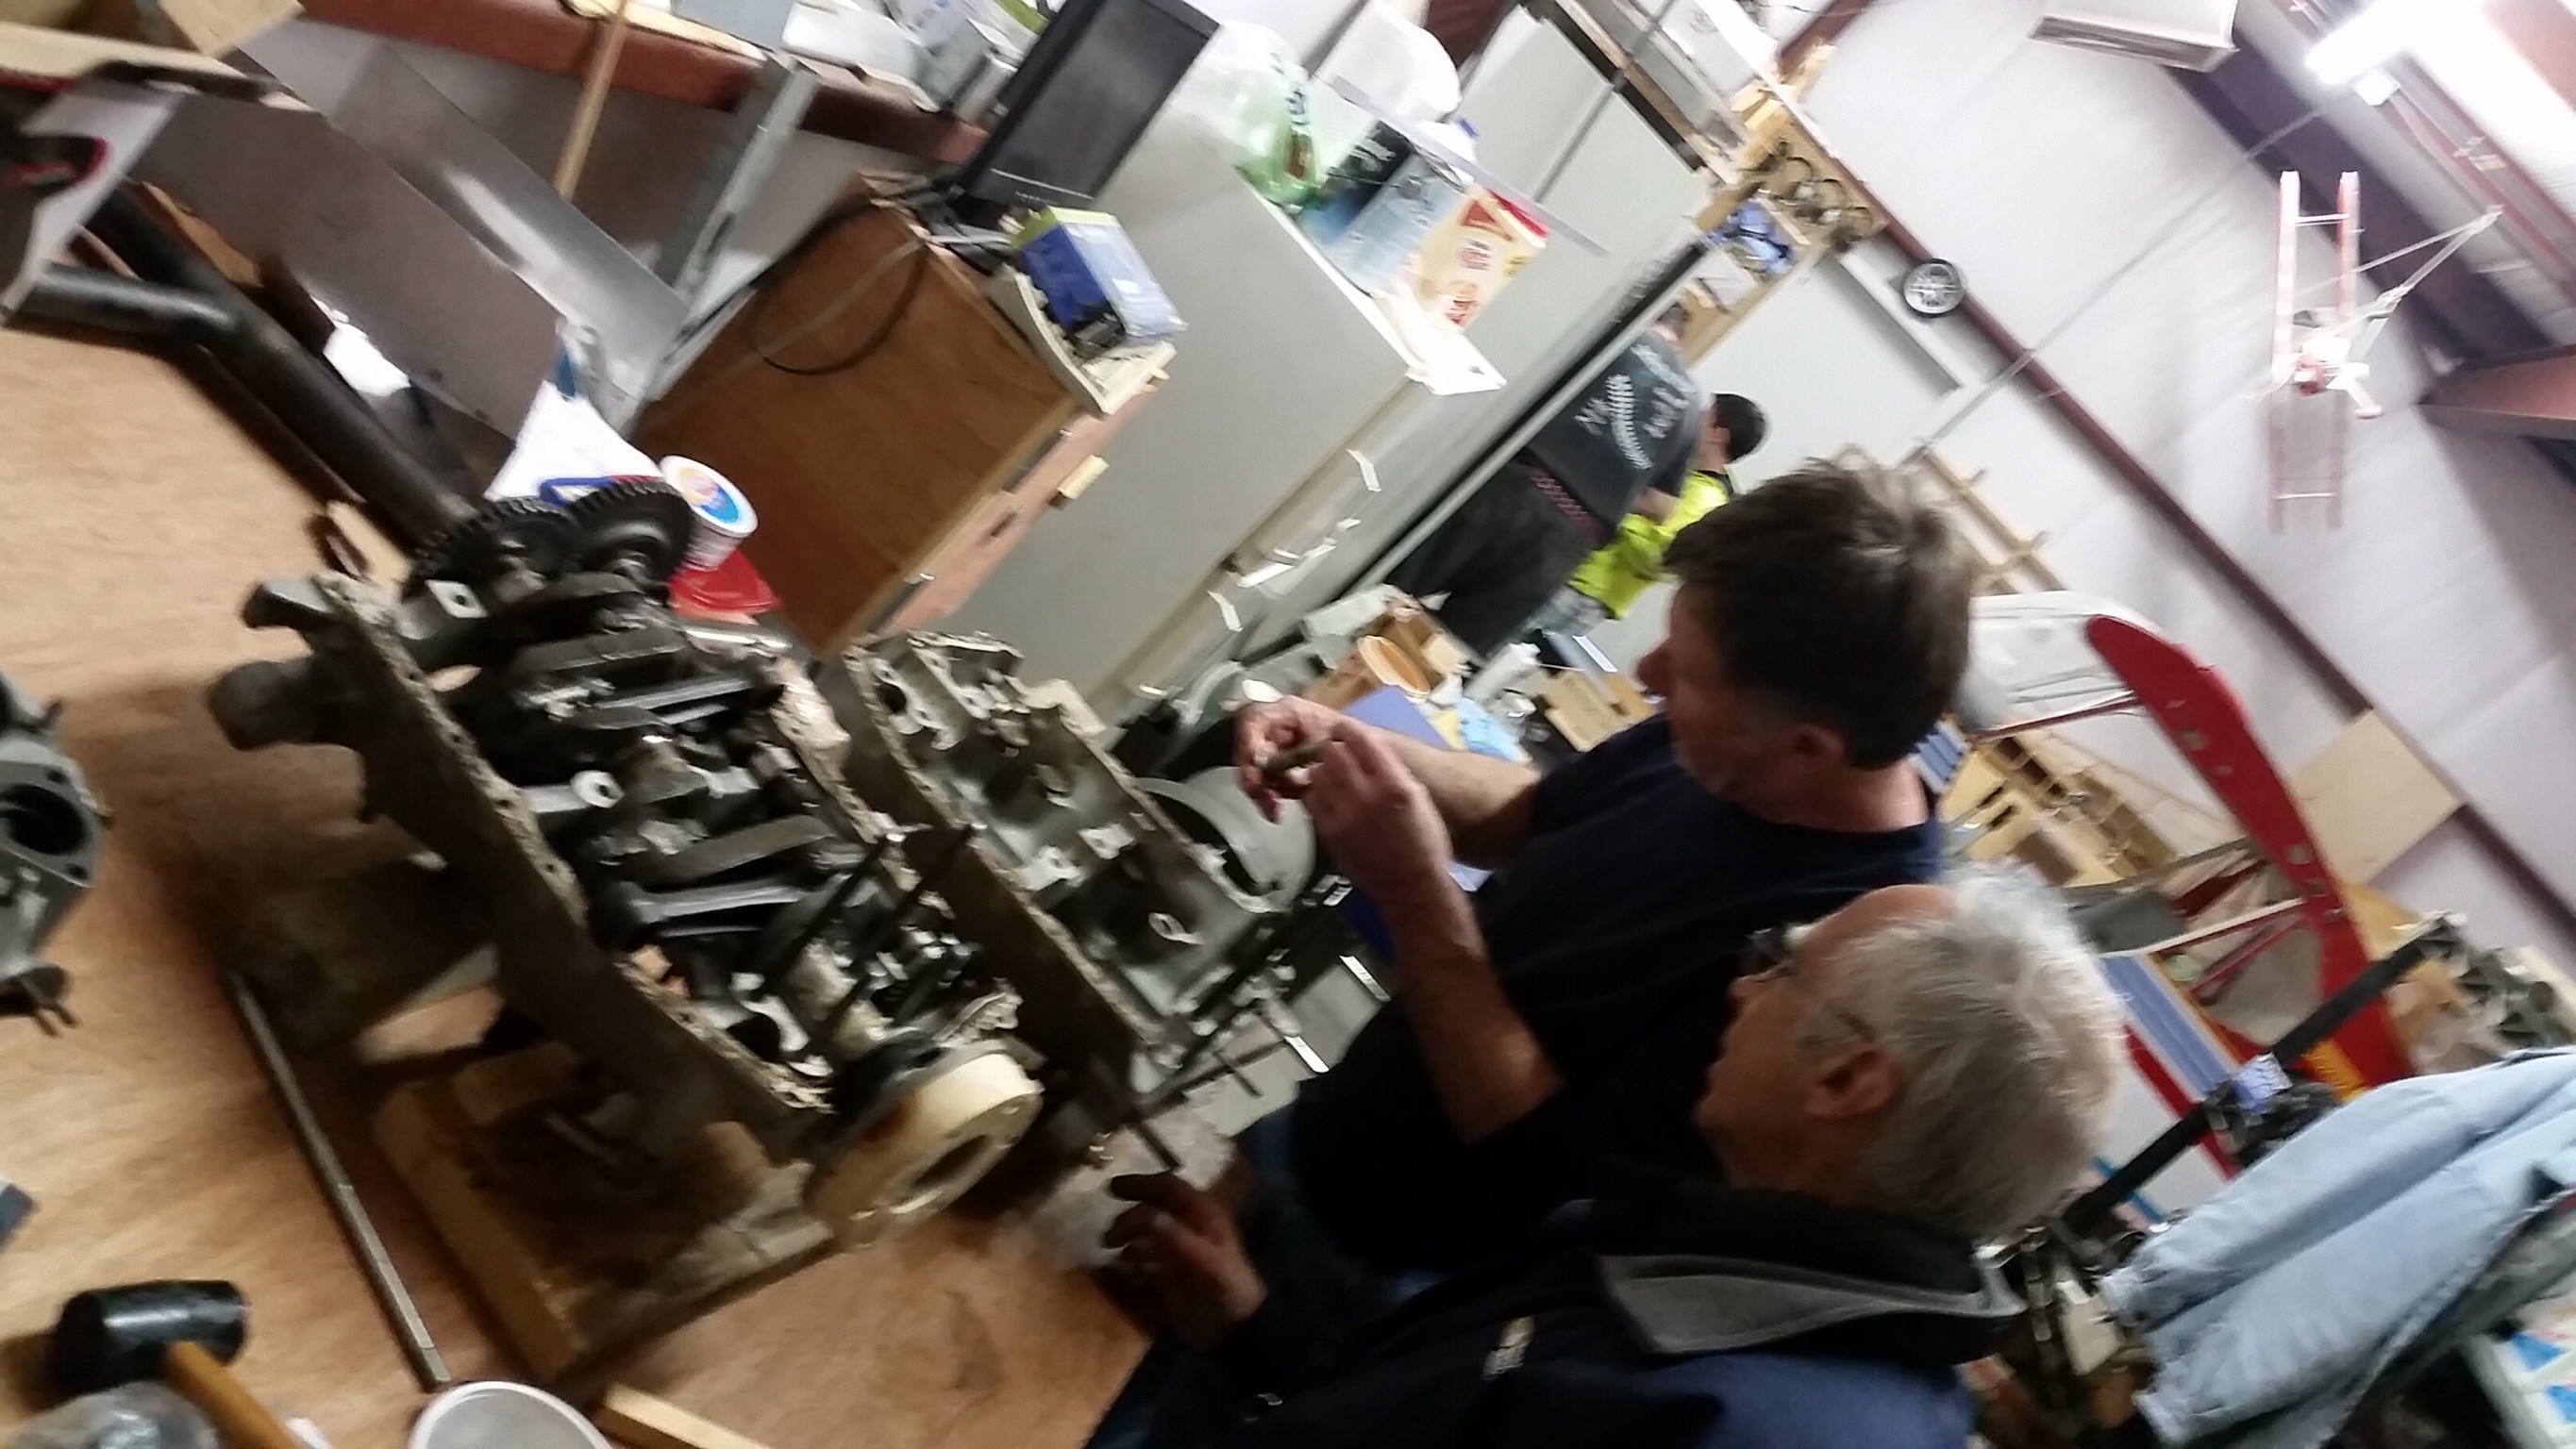 Jan 10 2015 build report EAA800: Overhauling our engine